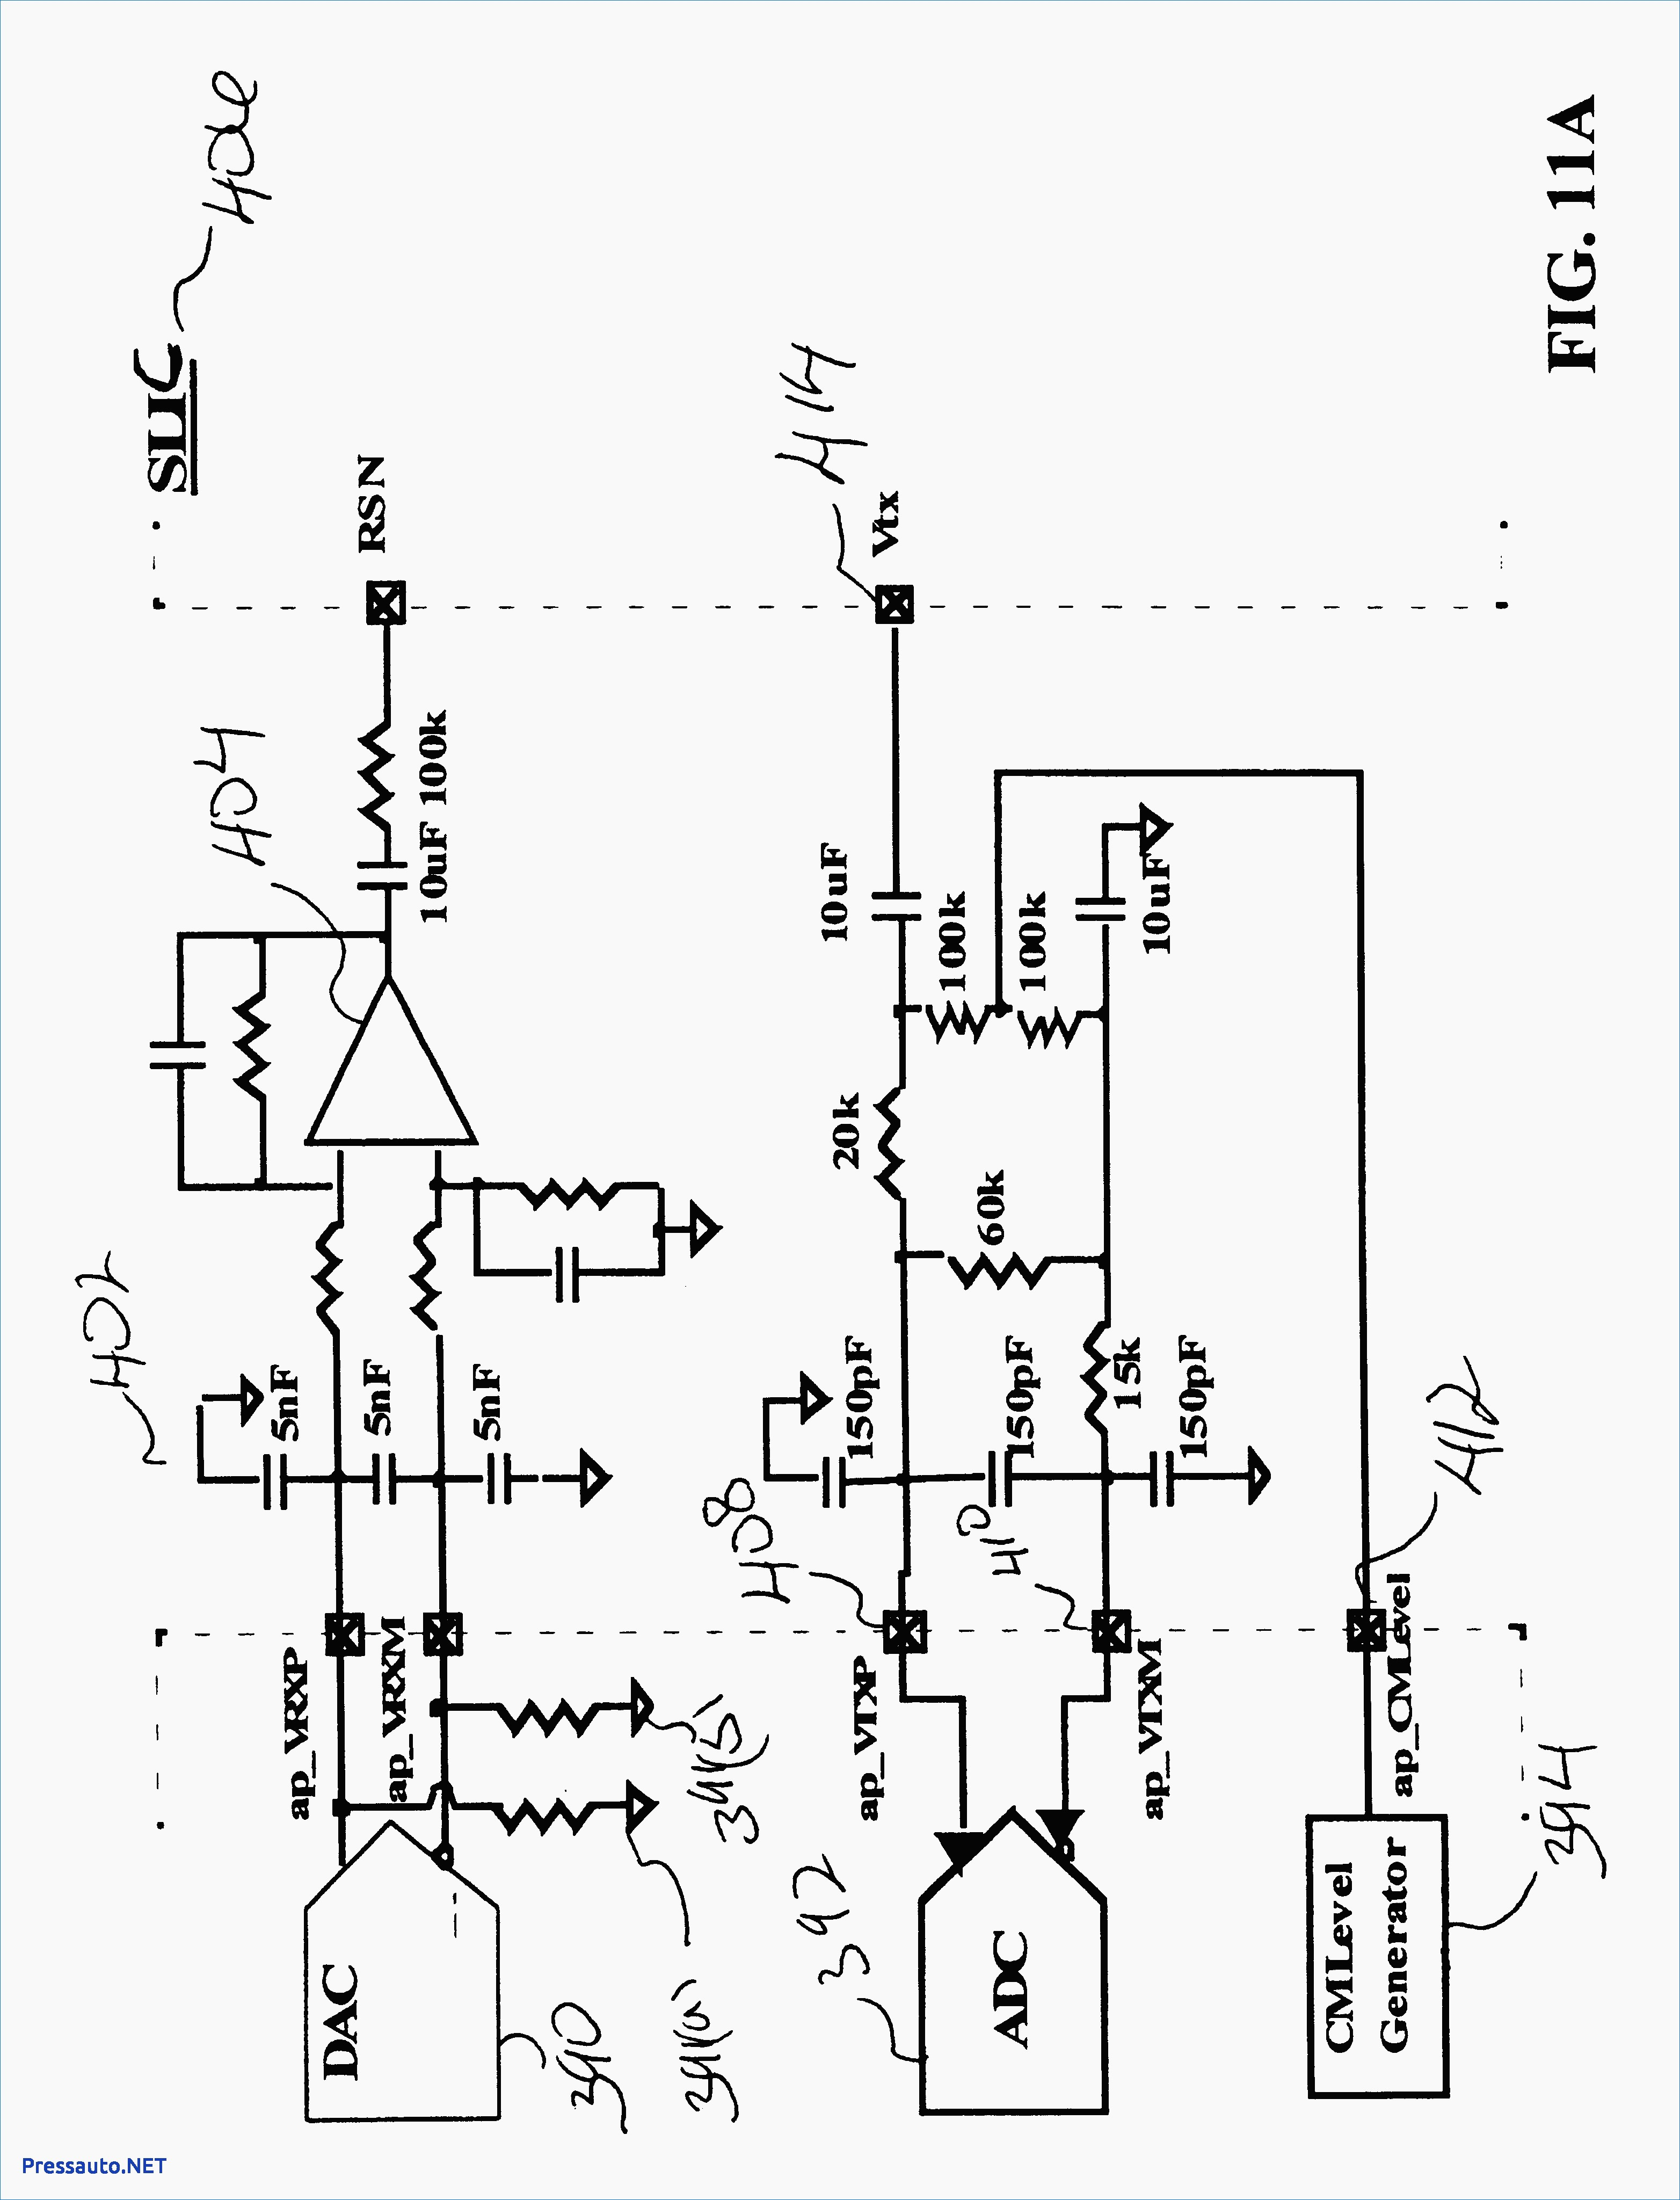 3 phase multi tap transformer connection diagram wiring